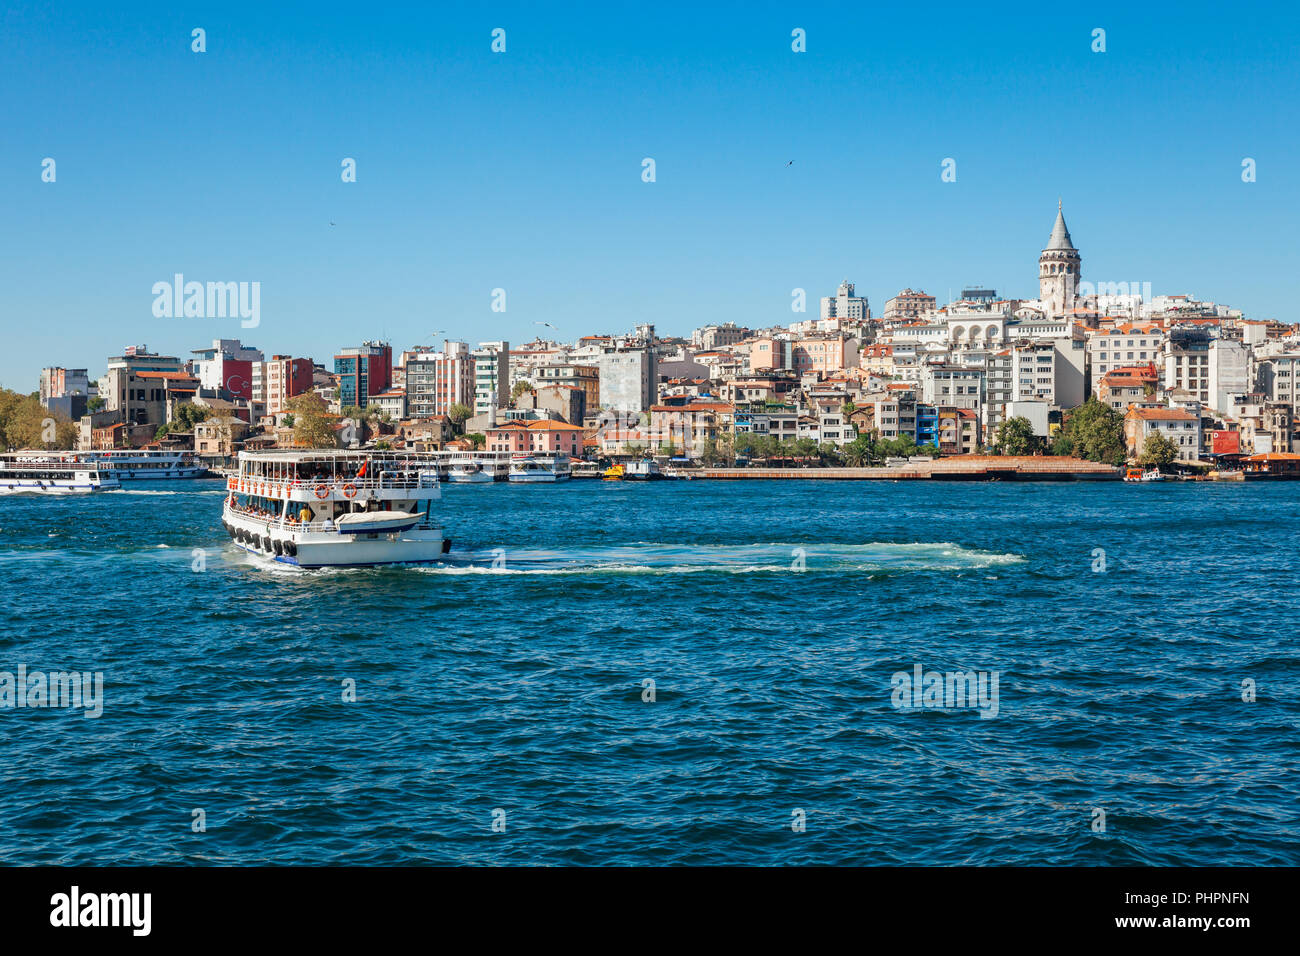 A tourist boat sails across the Golden Horn, Istanbul, Turkey Stock Photo